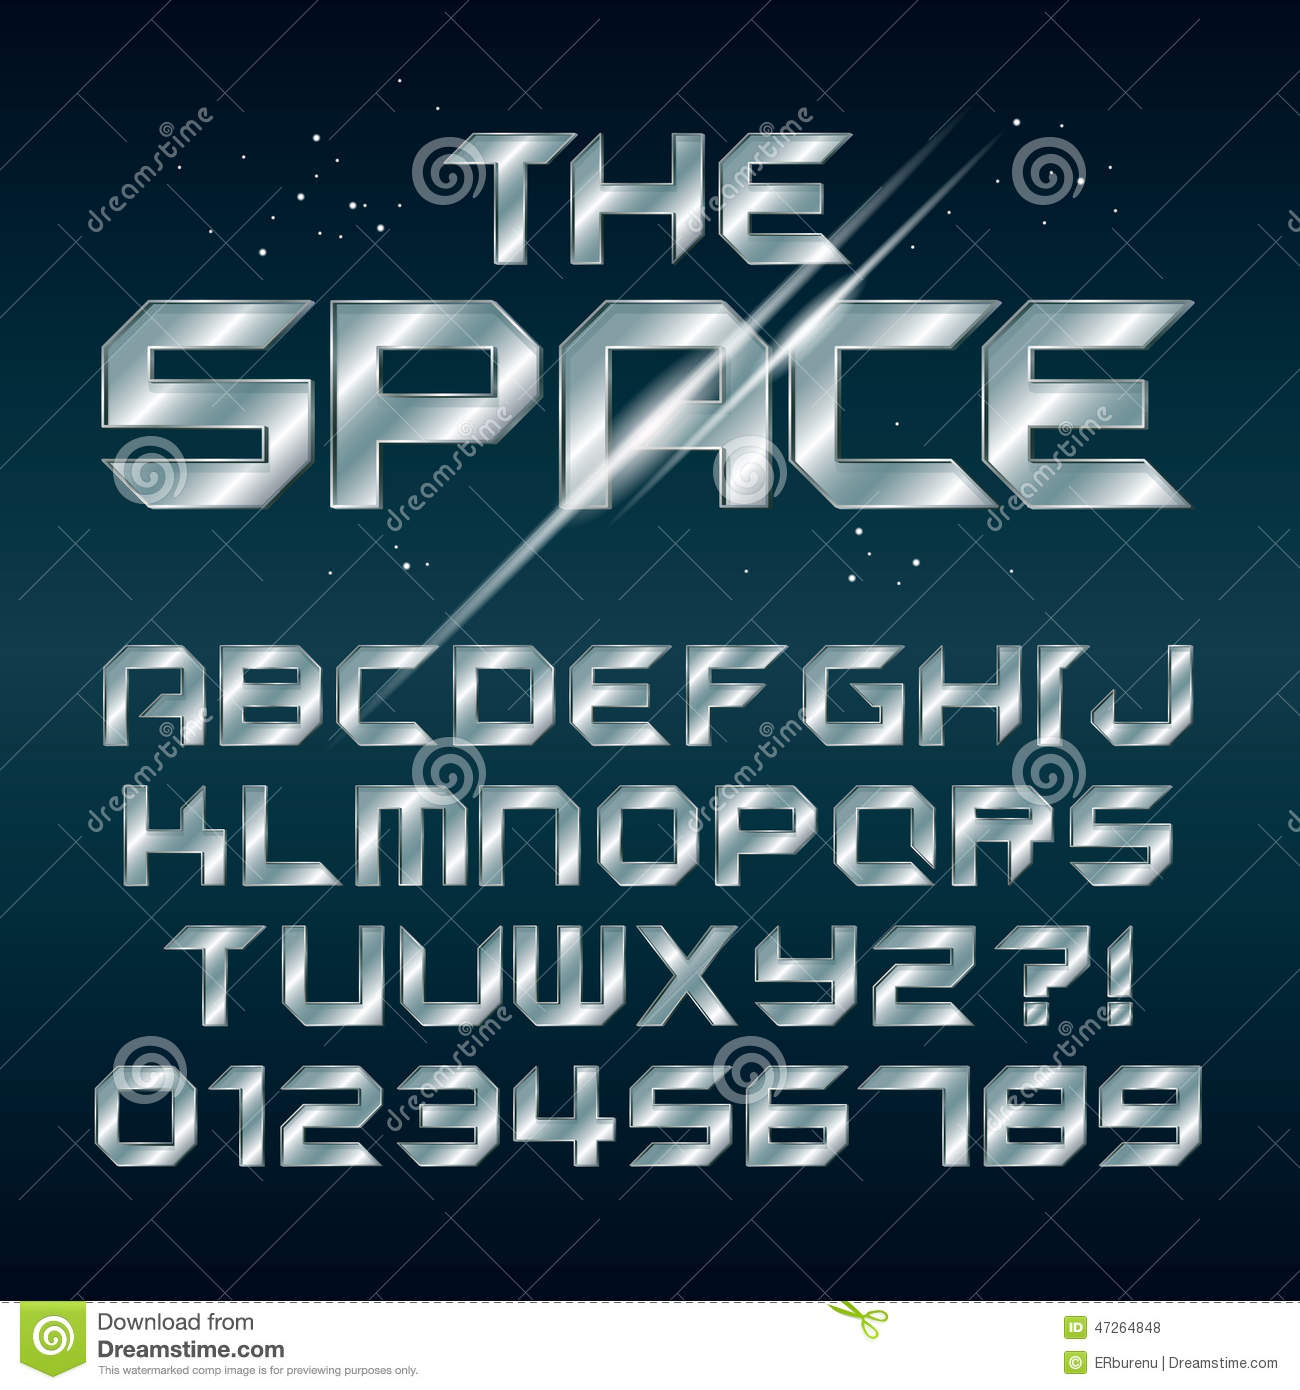 Futuristic Silver Chrome Alphabet and Numbers